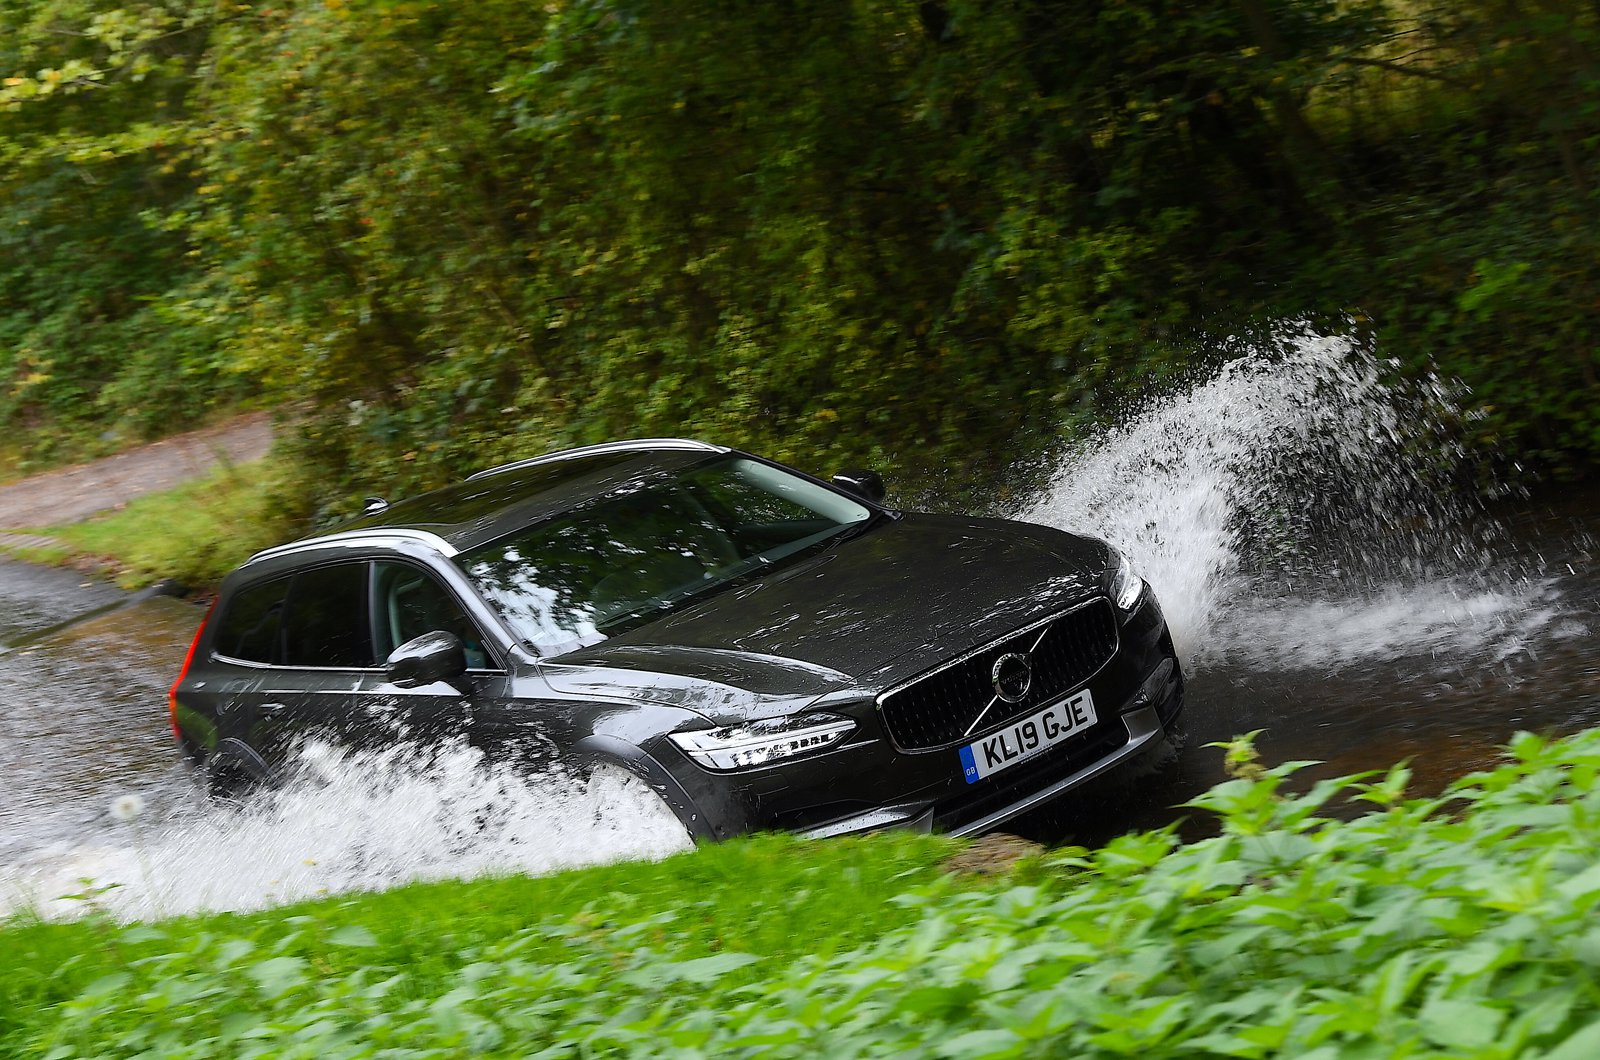 LT Volvo V90 Cross Country wading through ford